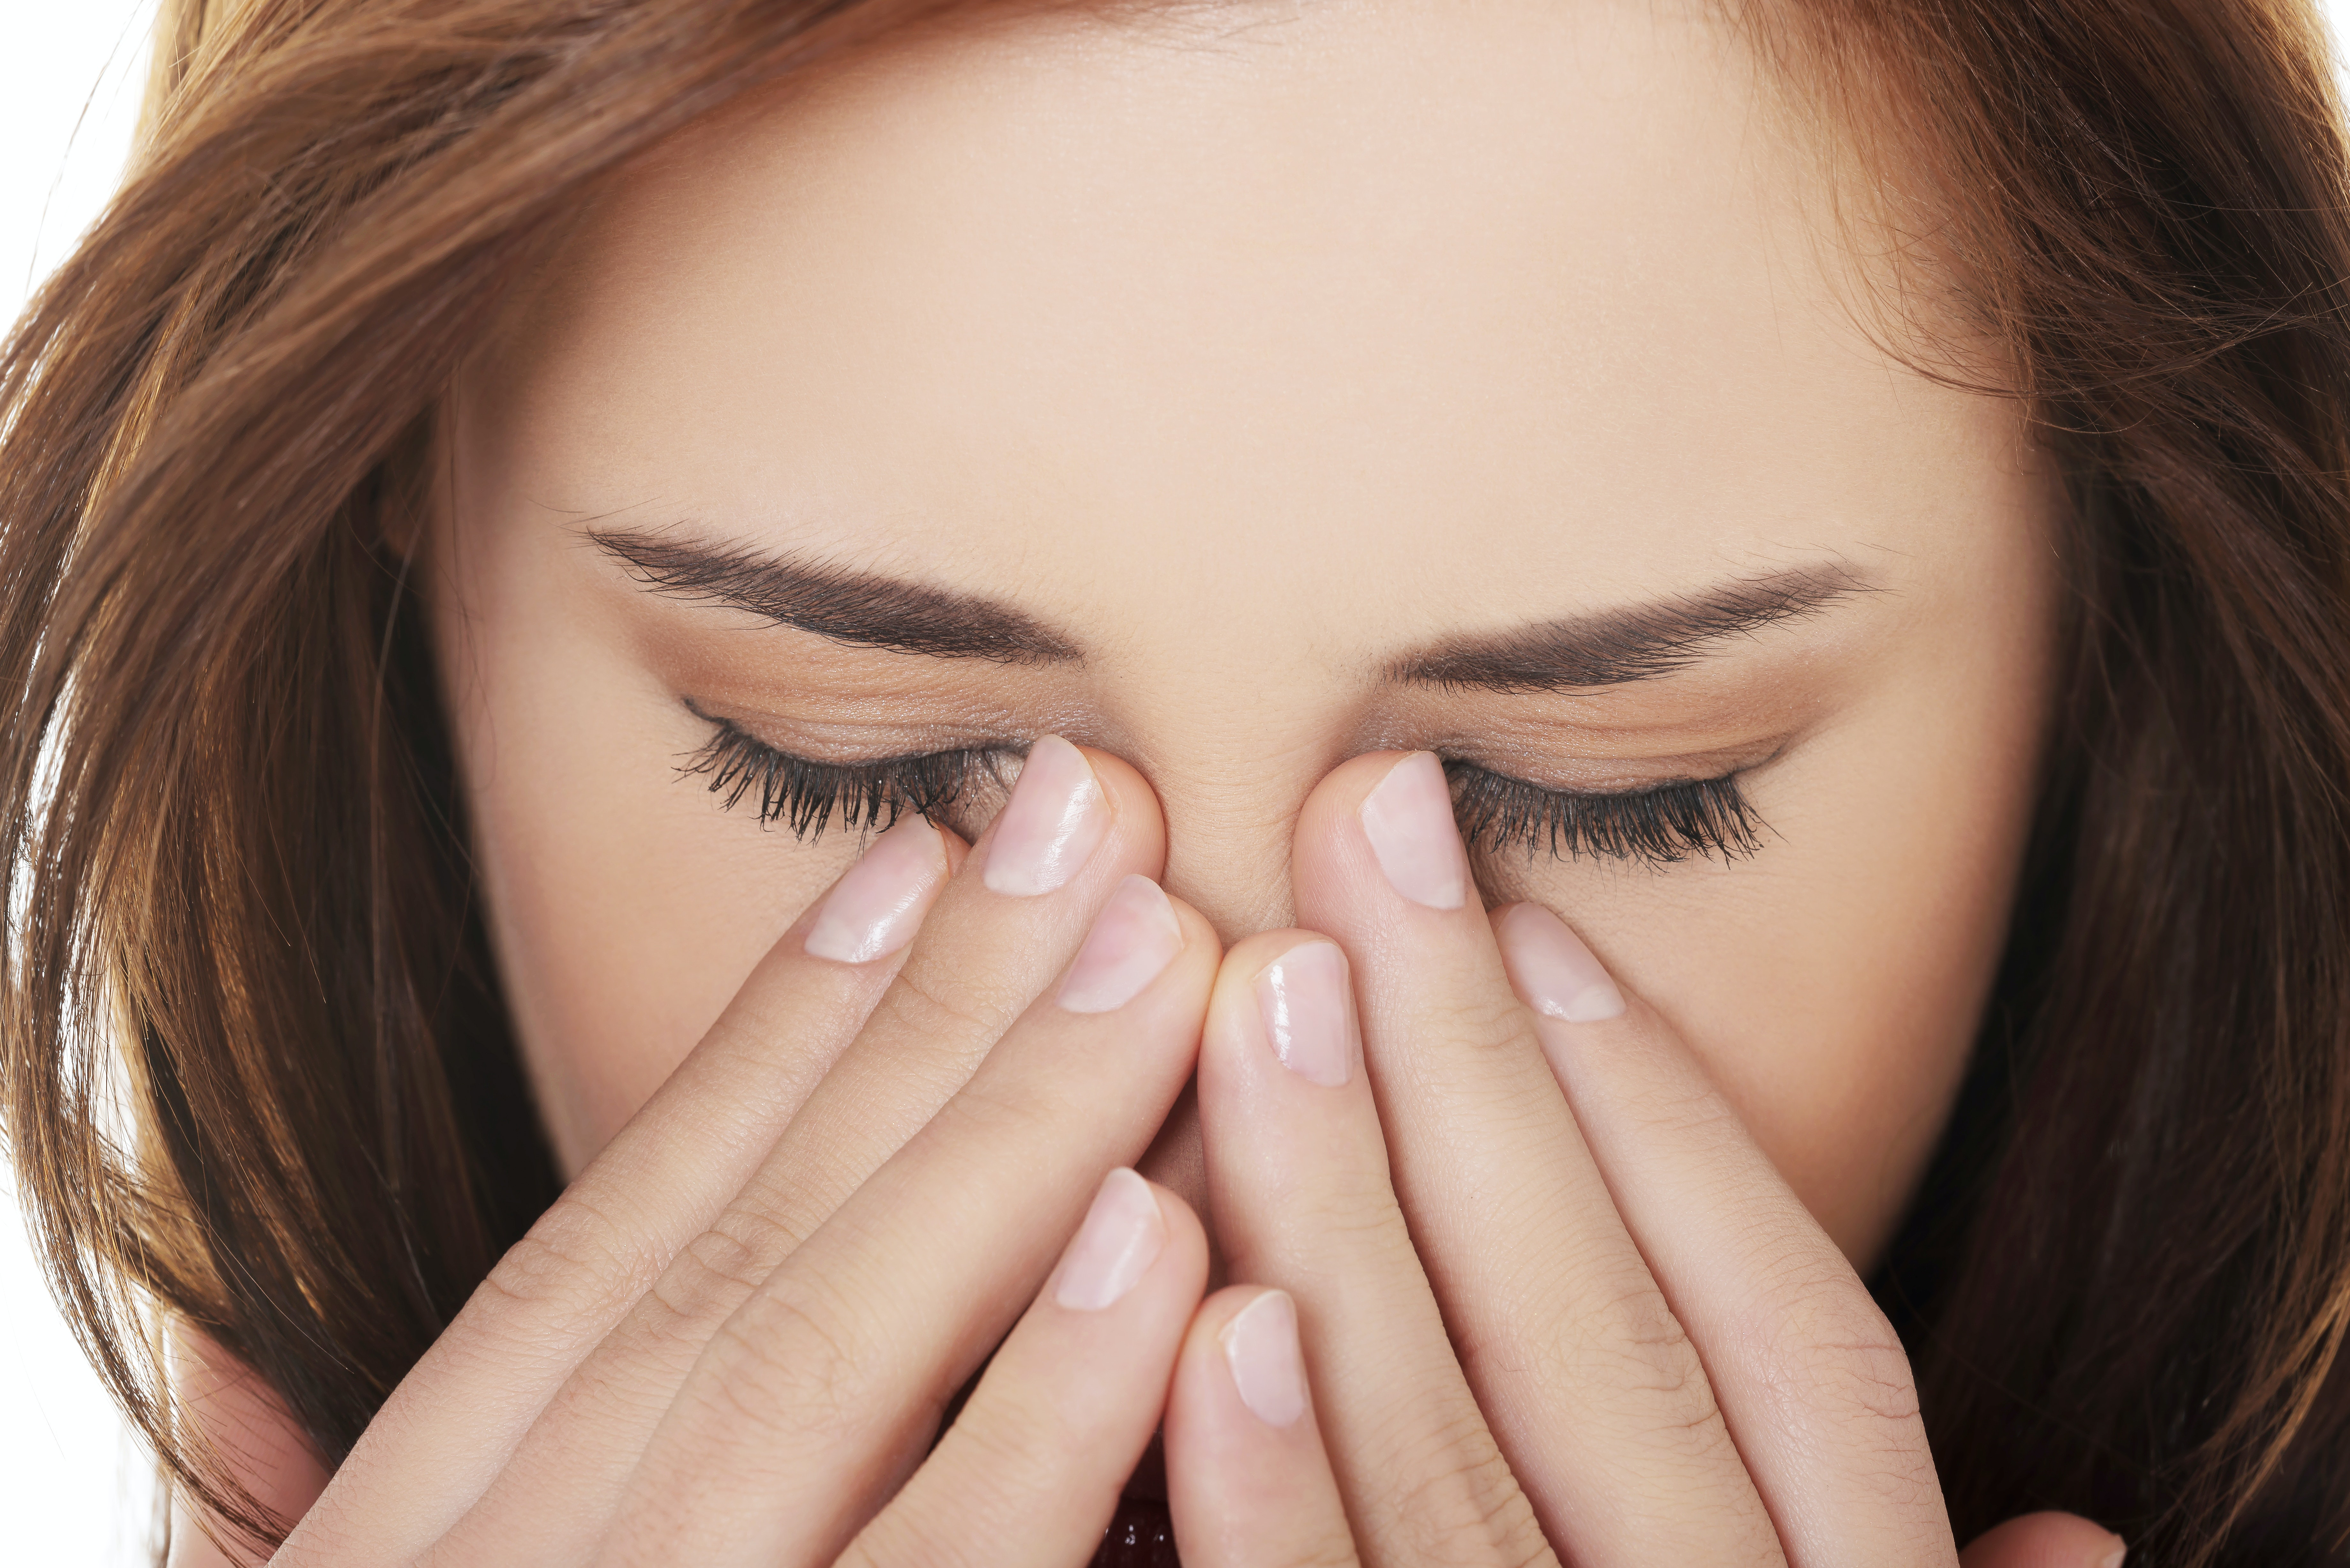 An image depicting a person suffering from morning eye crust symptoms